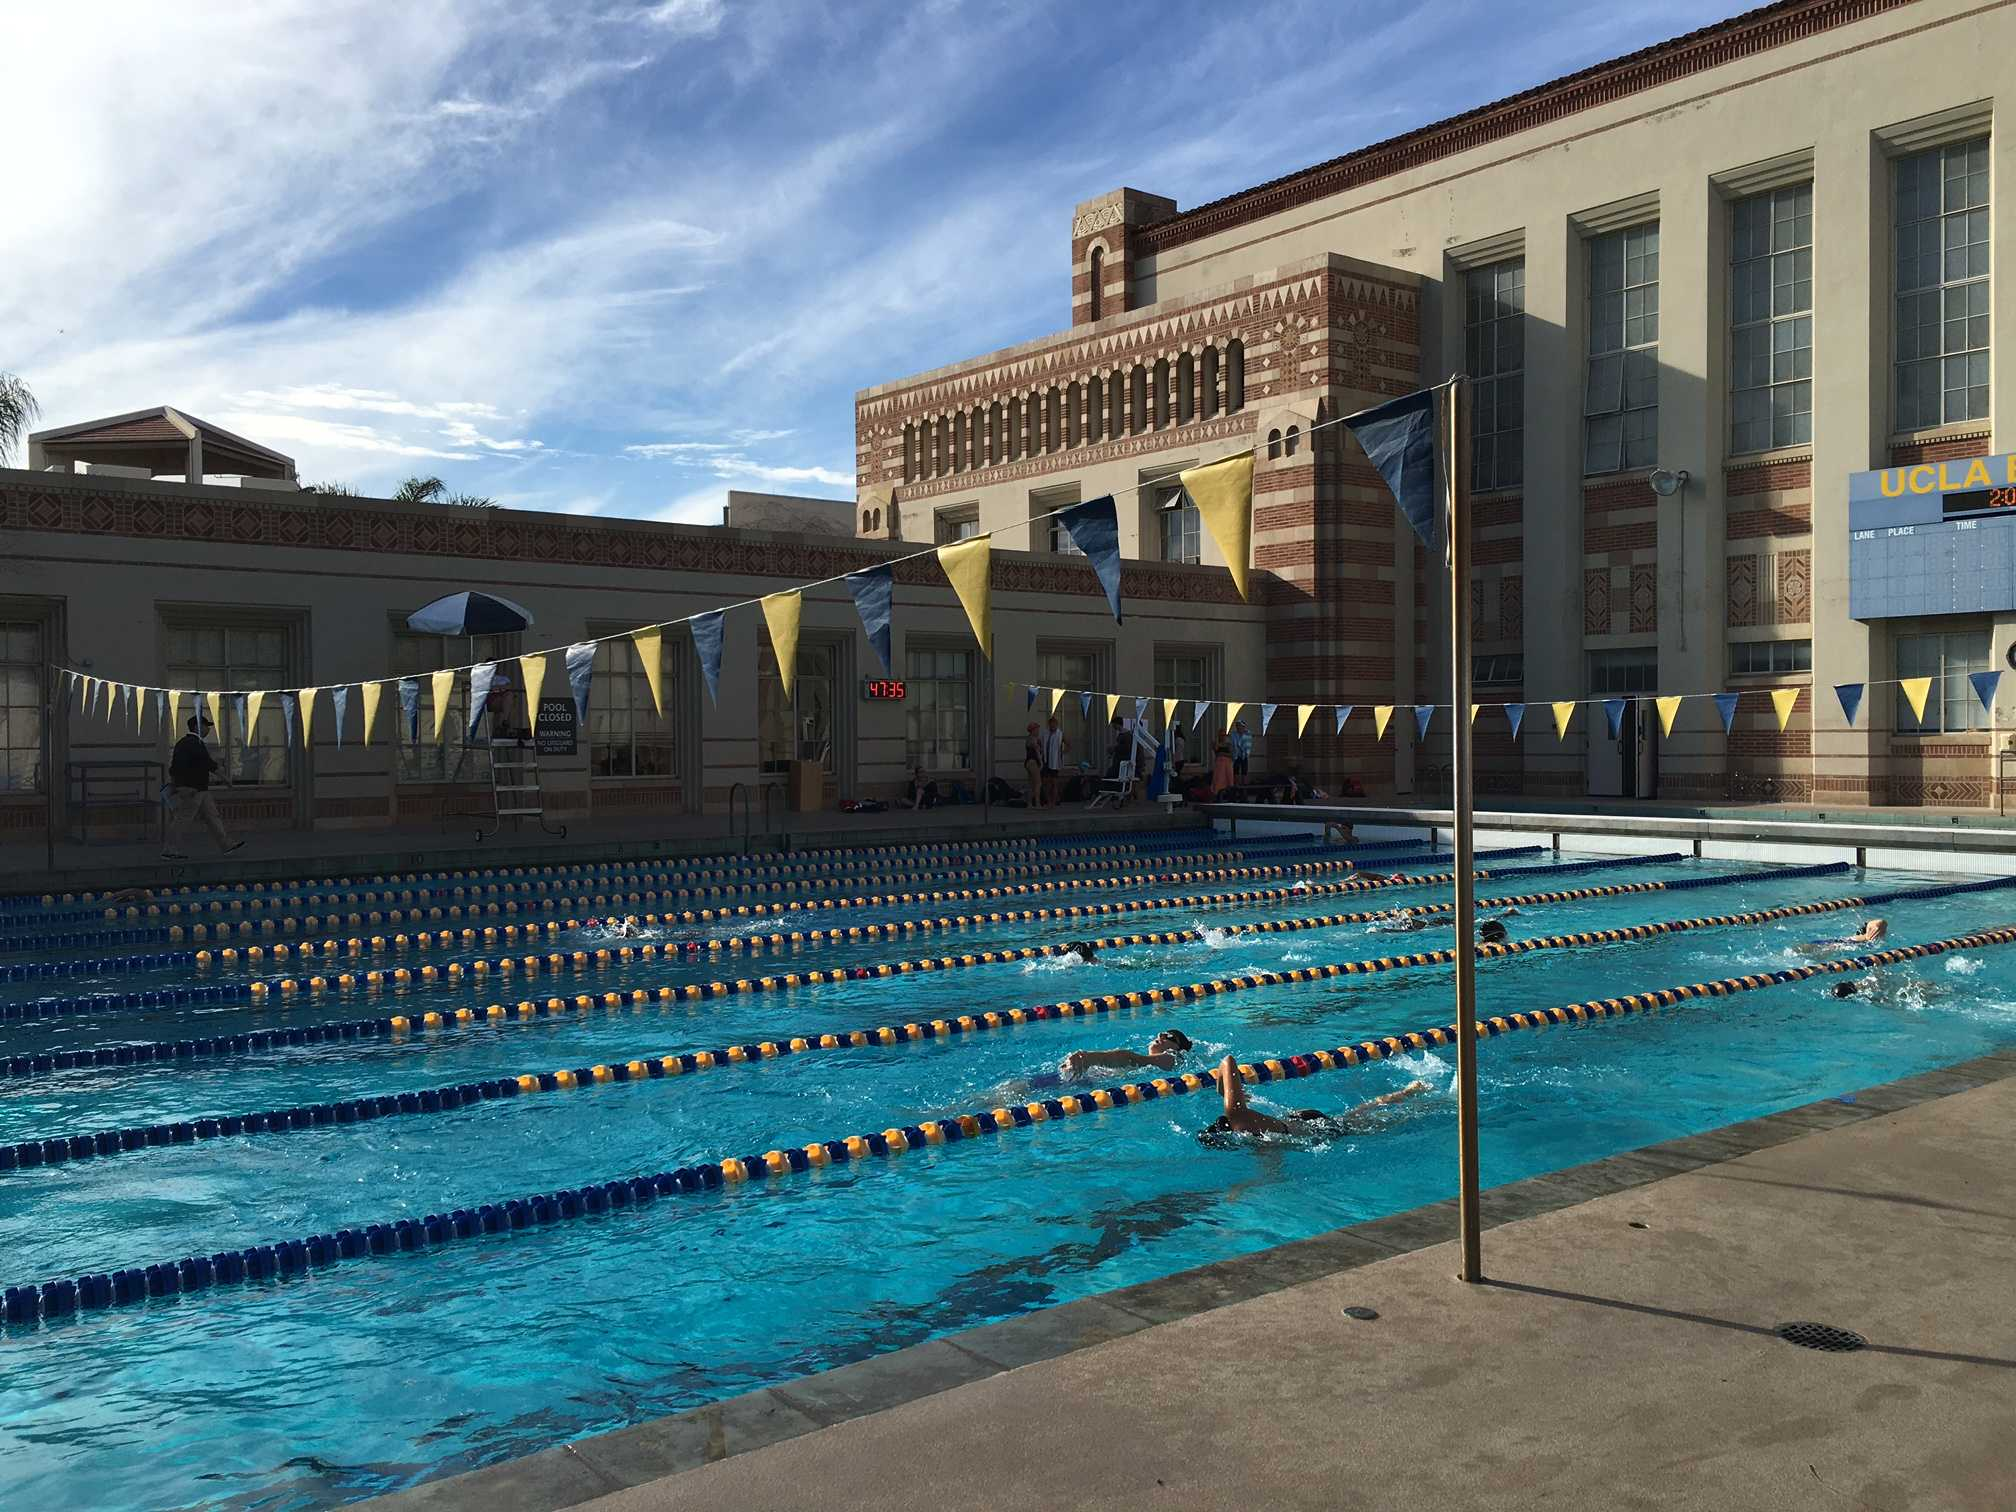 Archer's 2015-2016 upper school swim team at an invitational meet against Crossroads and Windward at UCLA. The team practices daily at UCLA.